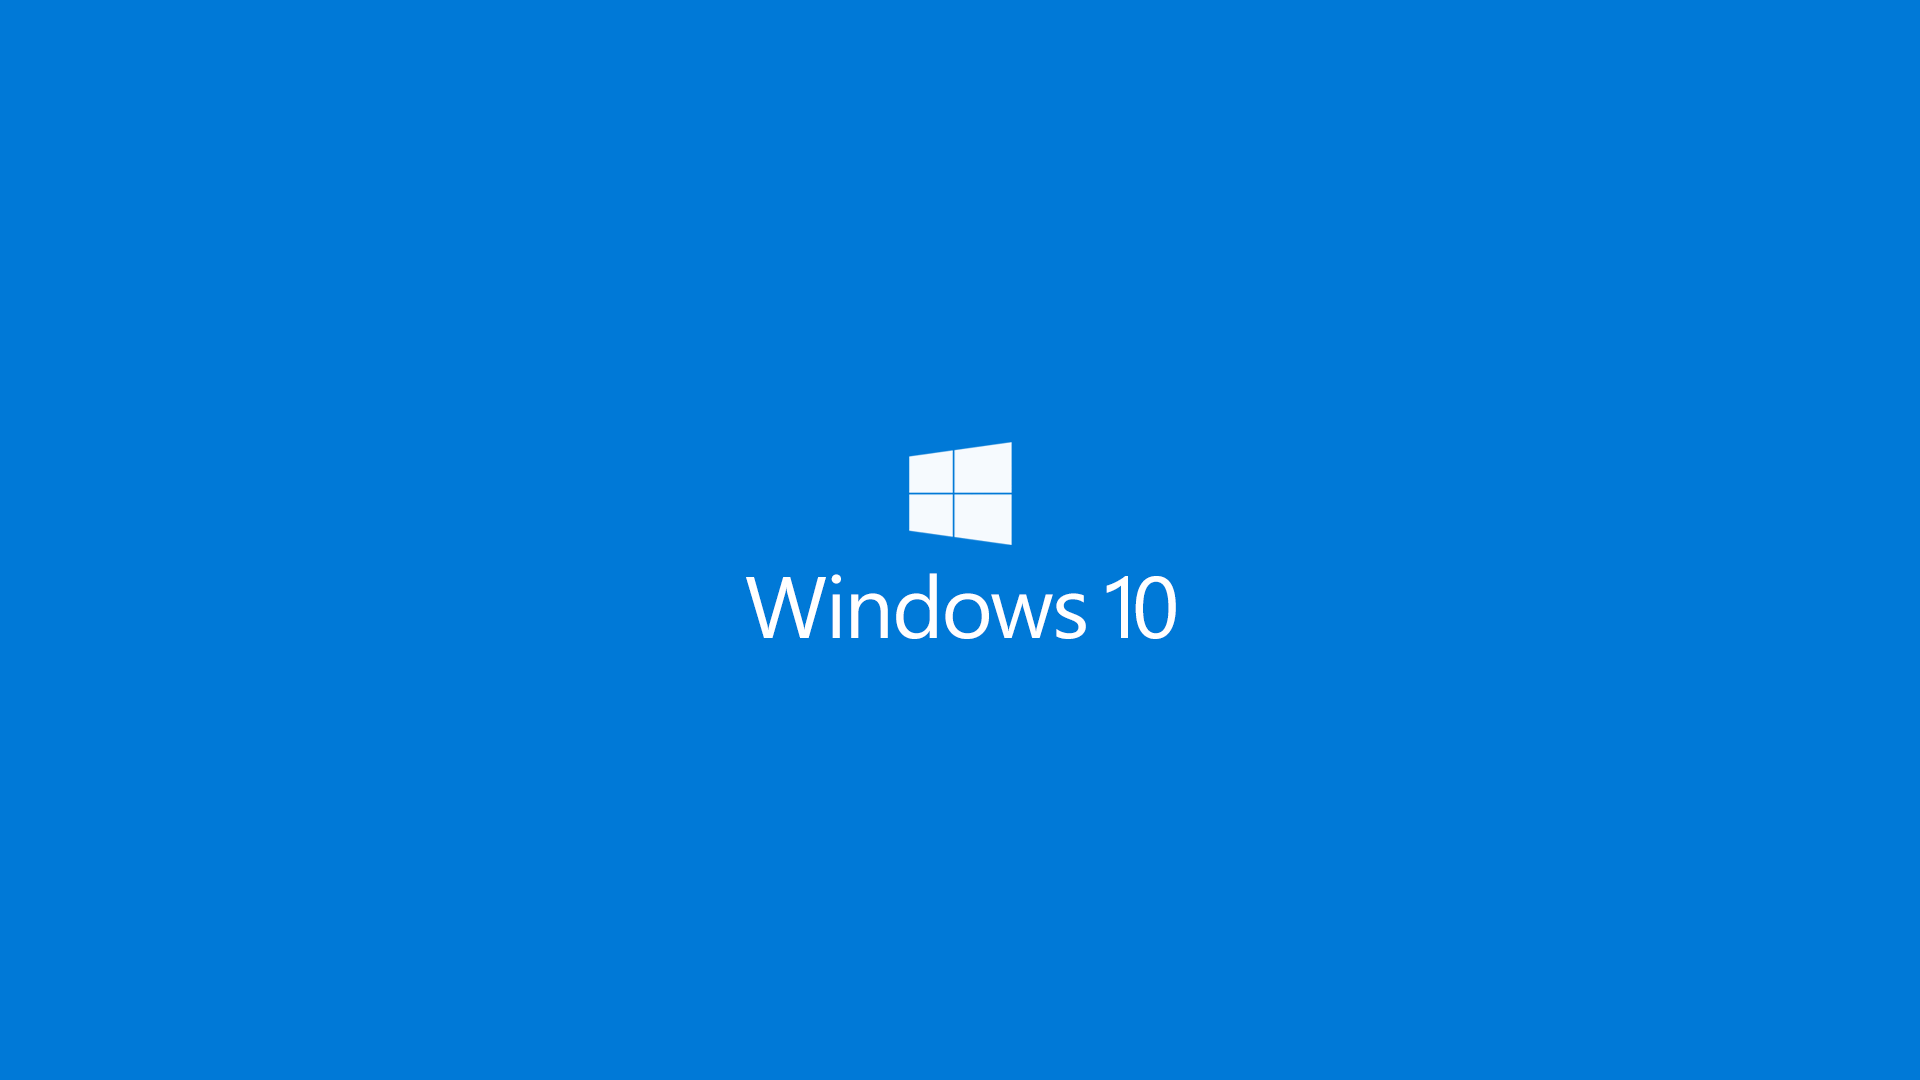 Windows 10 blue background desktop background